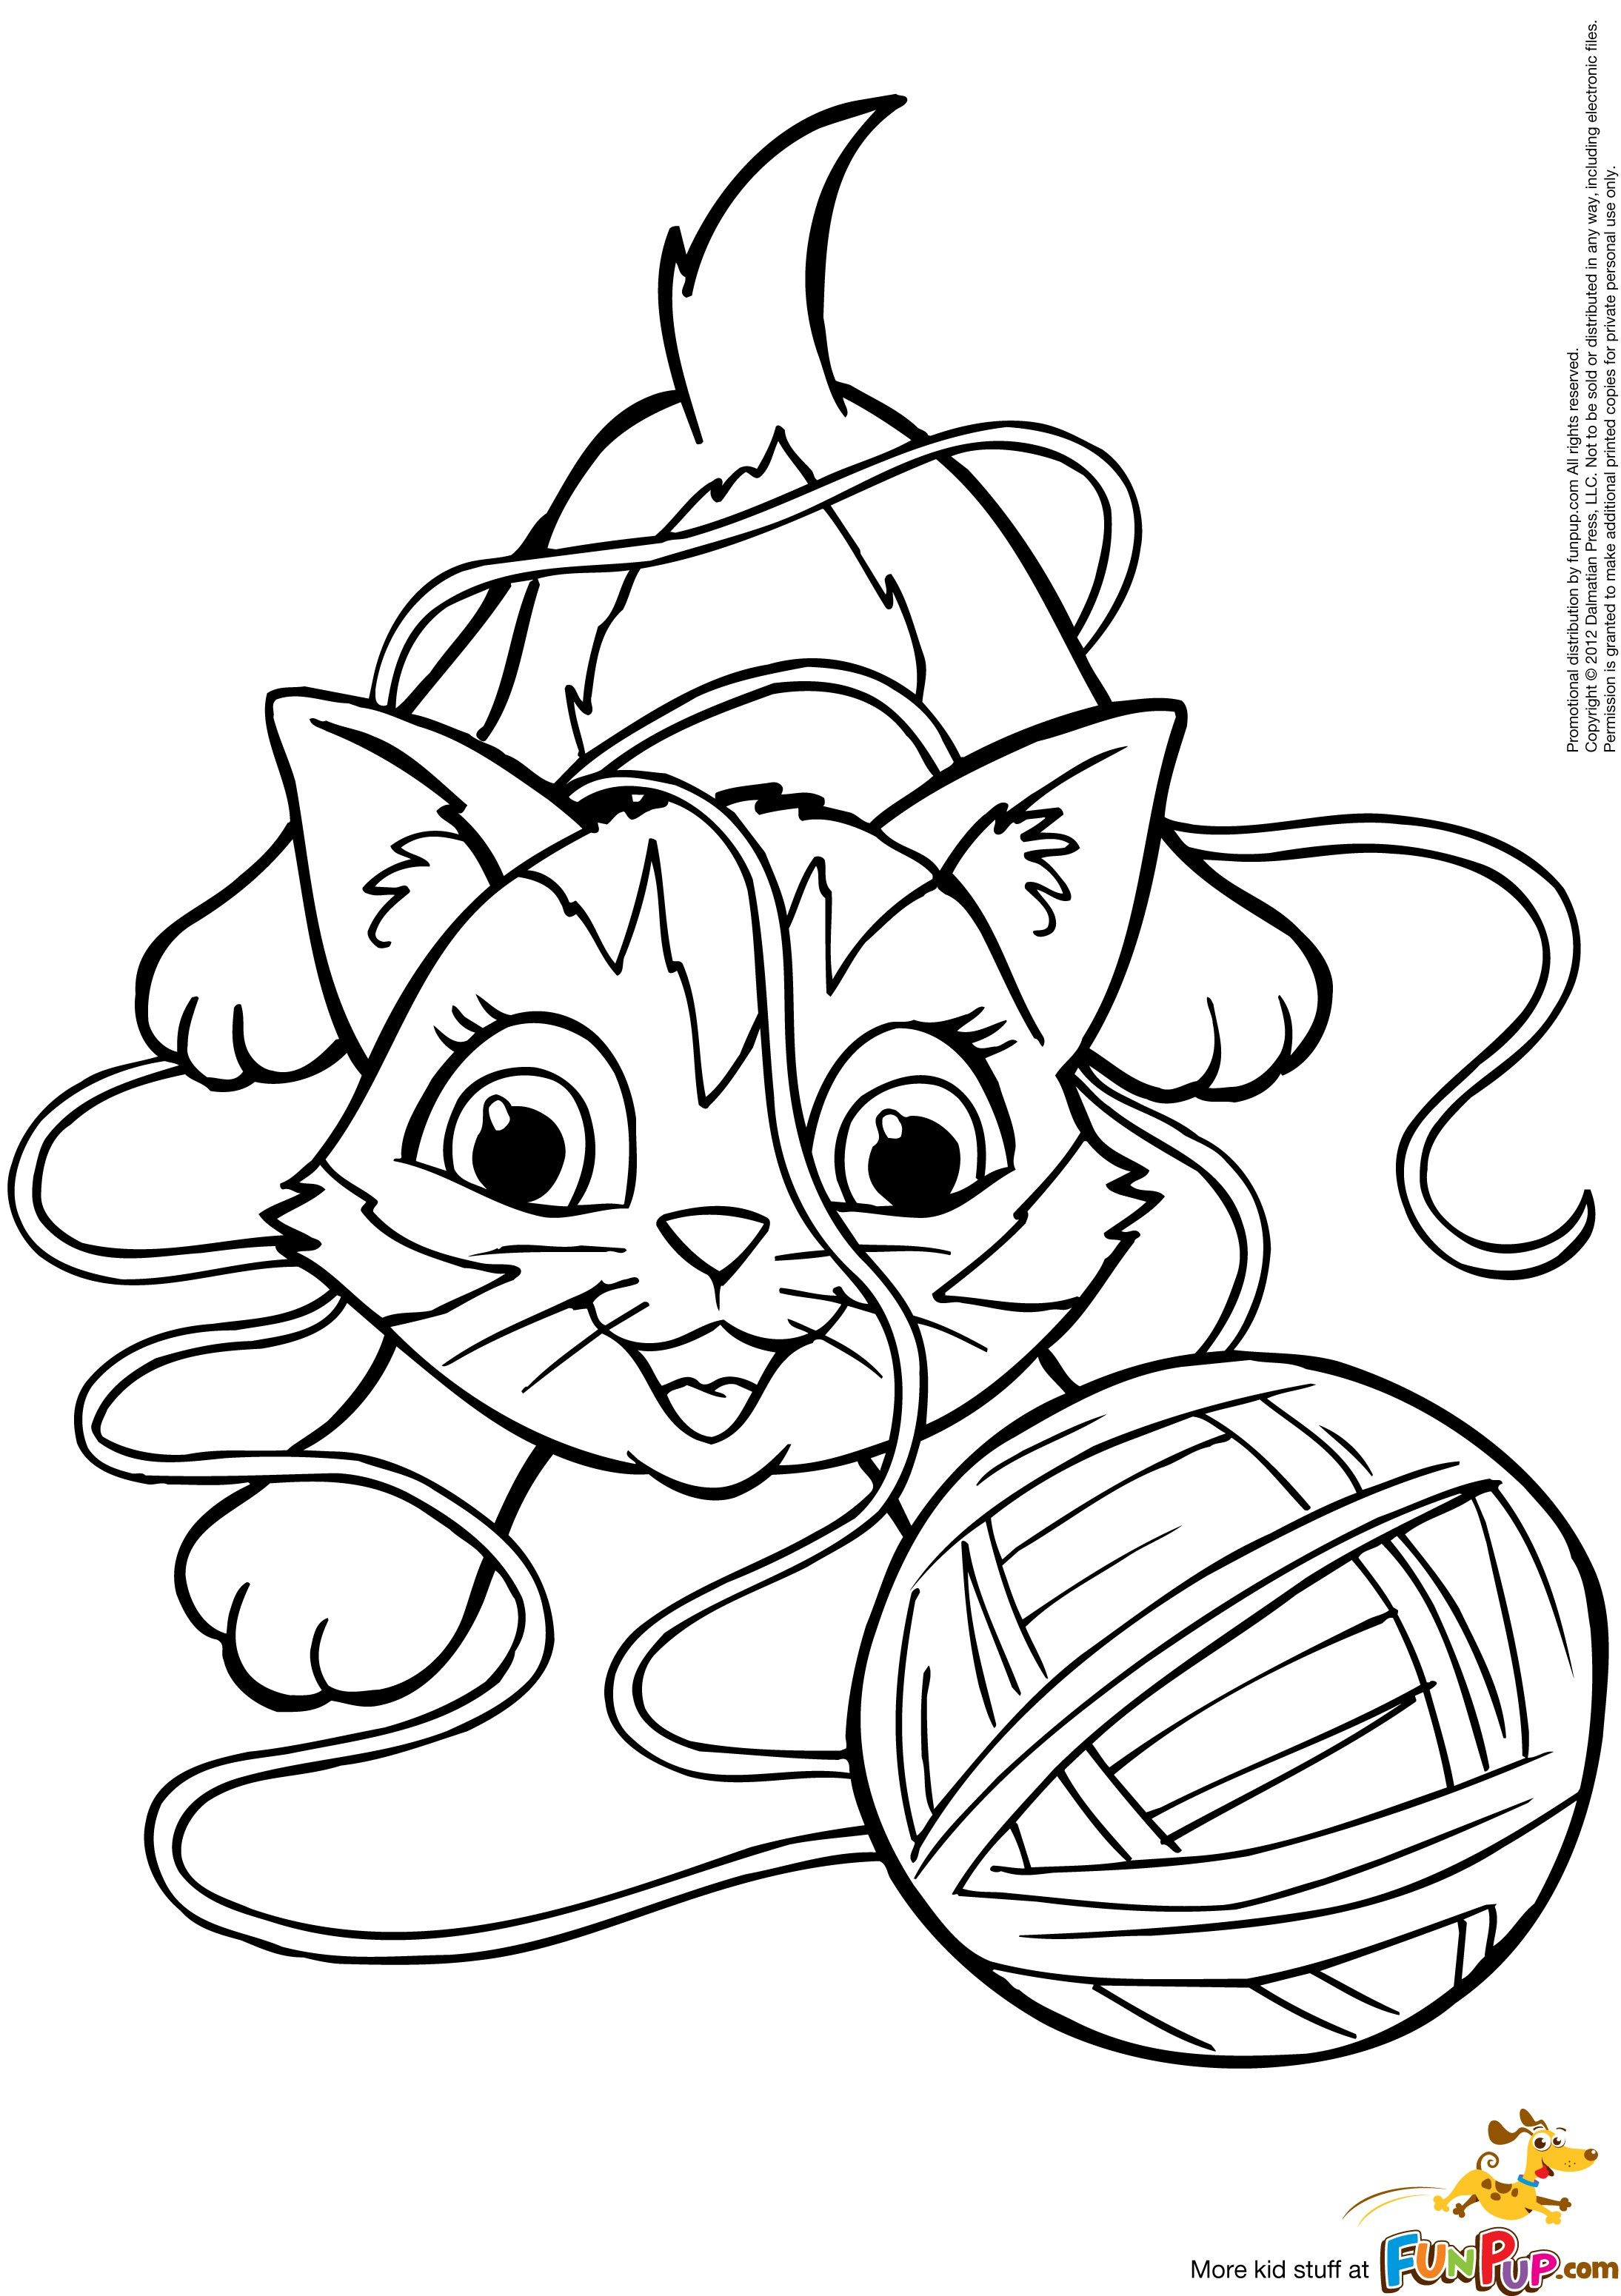 kitten coloring cute coloring pages best coloring pages for kids kitten coloring